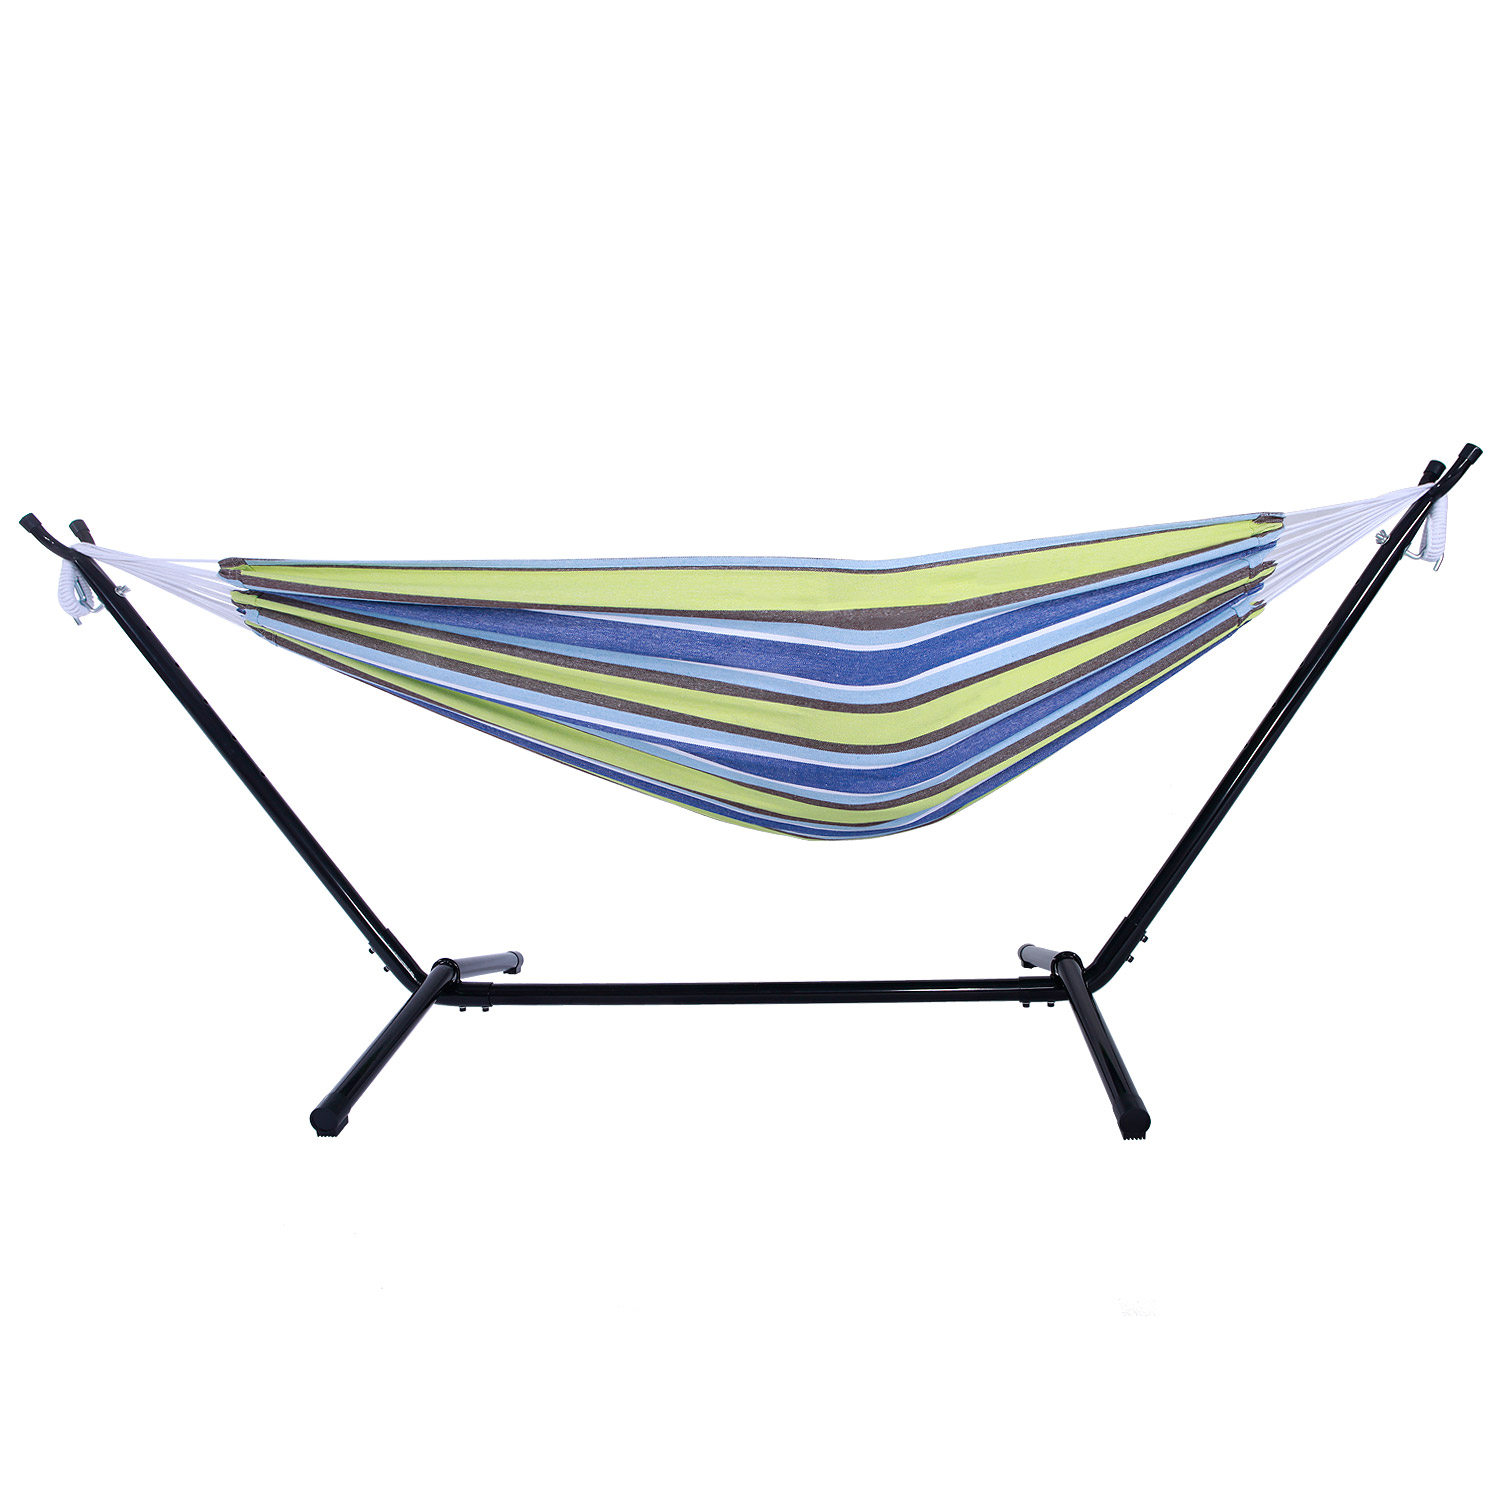 Portable Double Hammock With Space Saving Steel Stand W Carrying